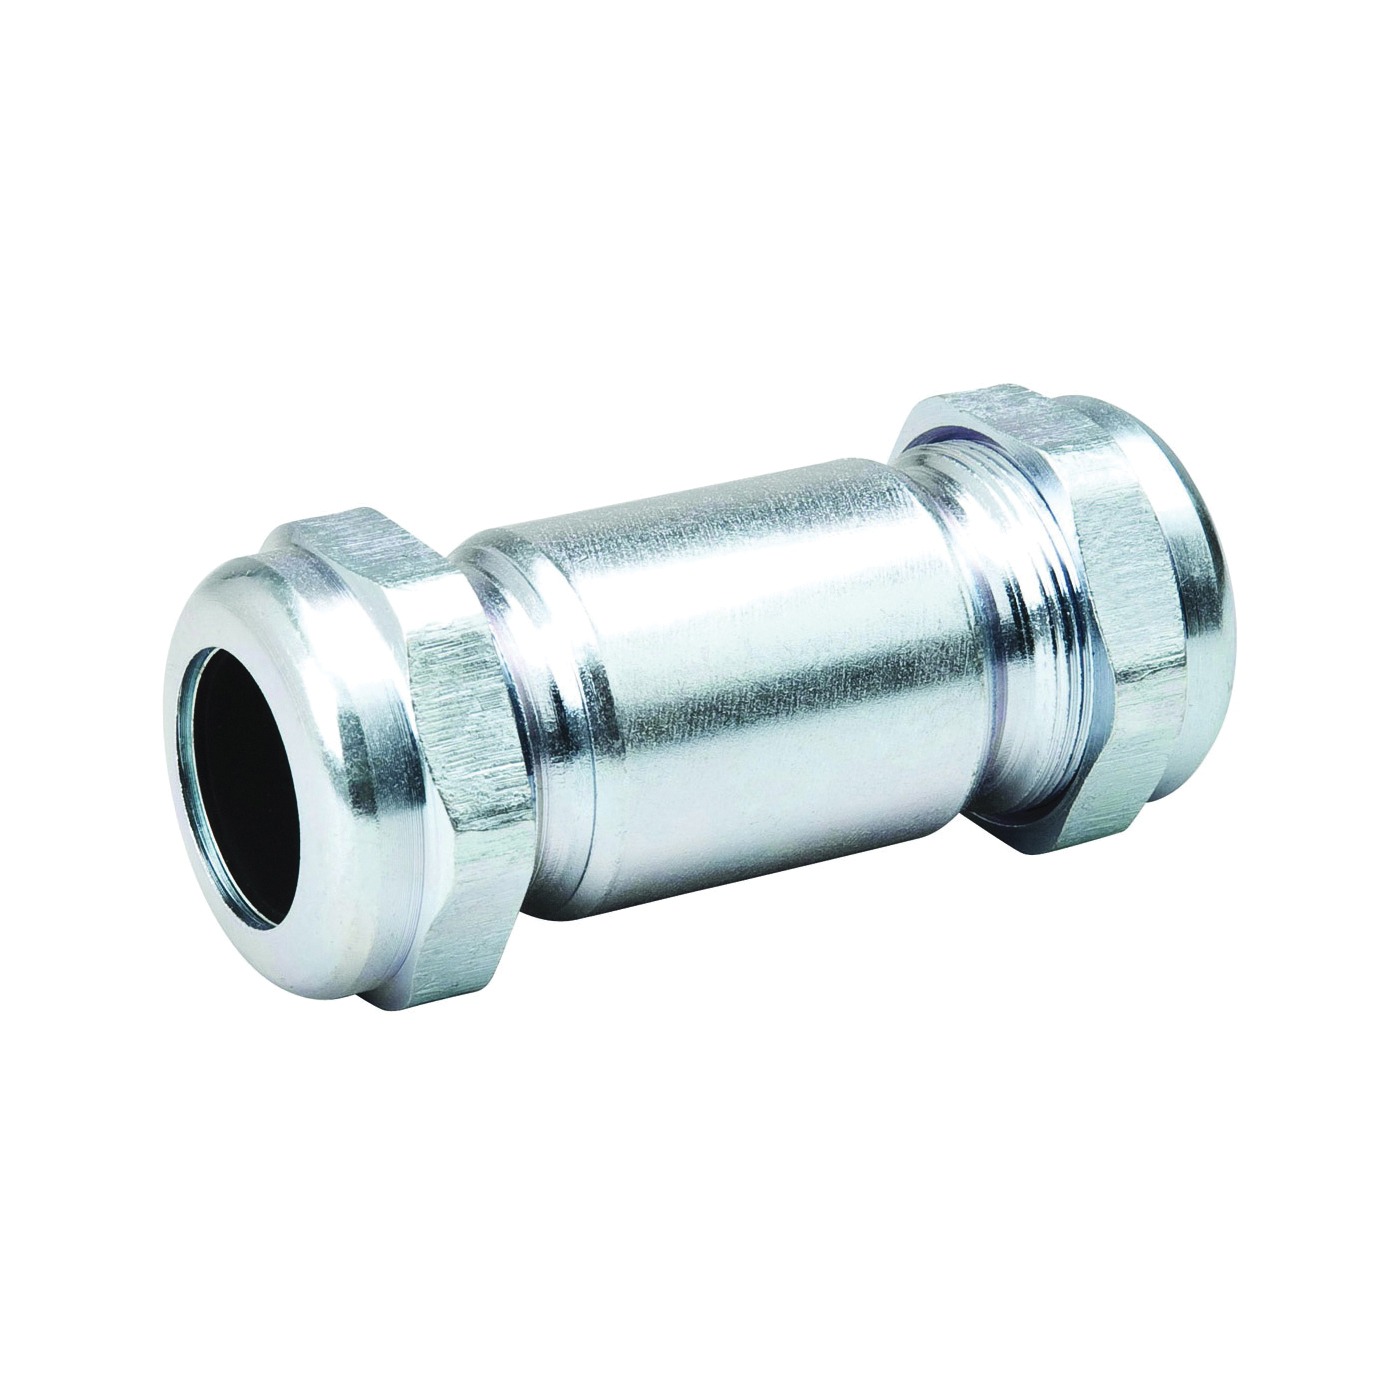 Picture of B & K 160-003HC Compression Coupling, 1/2 in, IPS, 125 psi Pressure